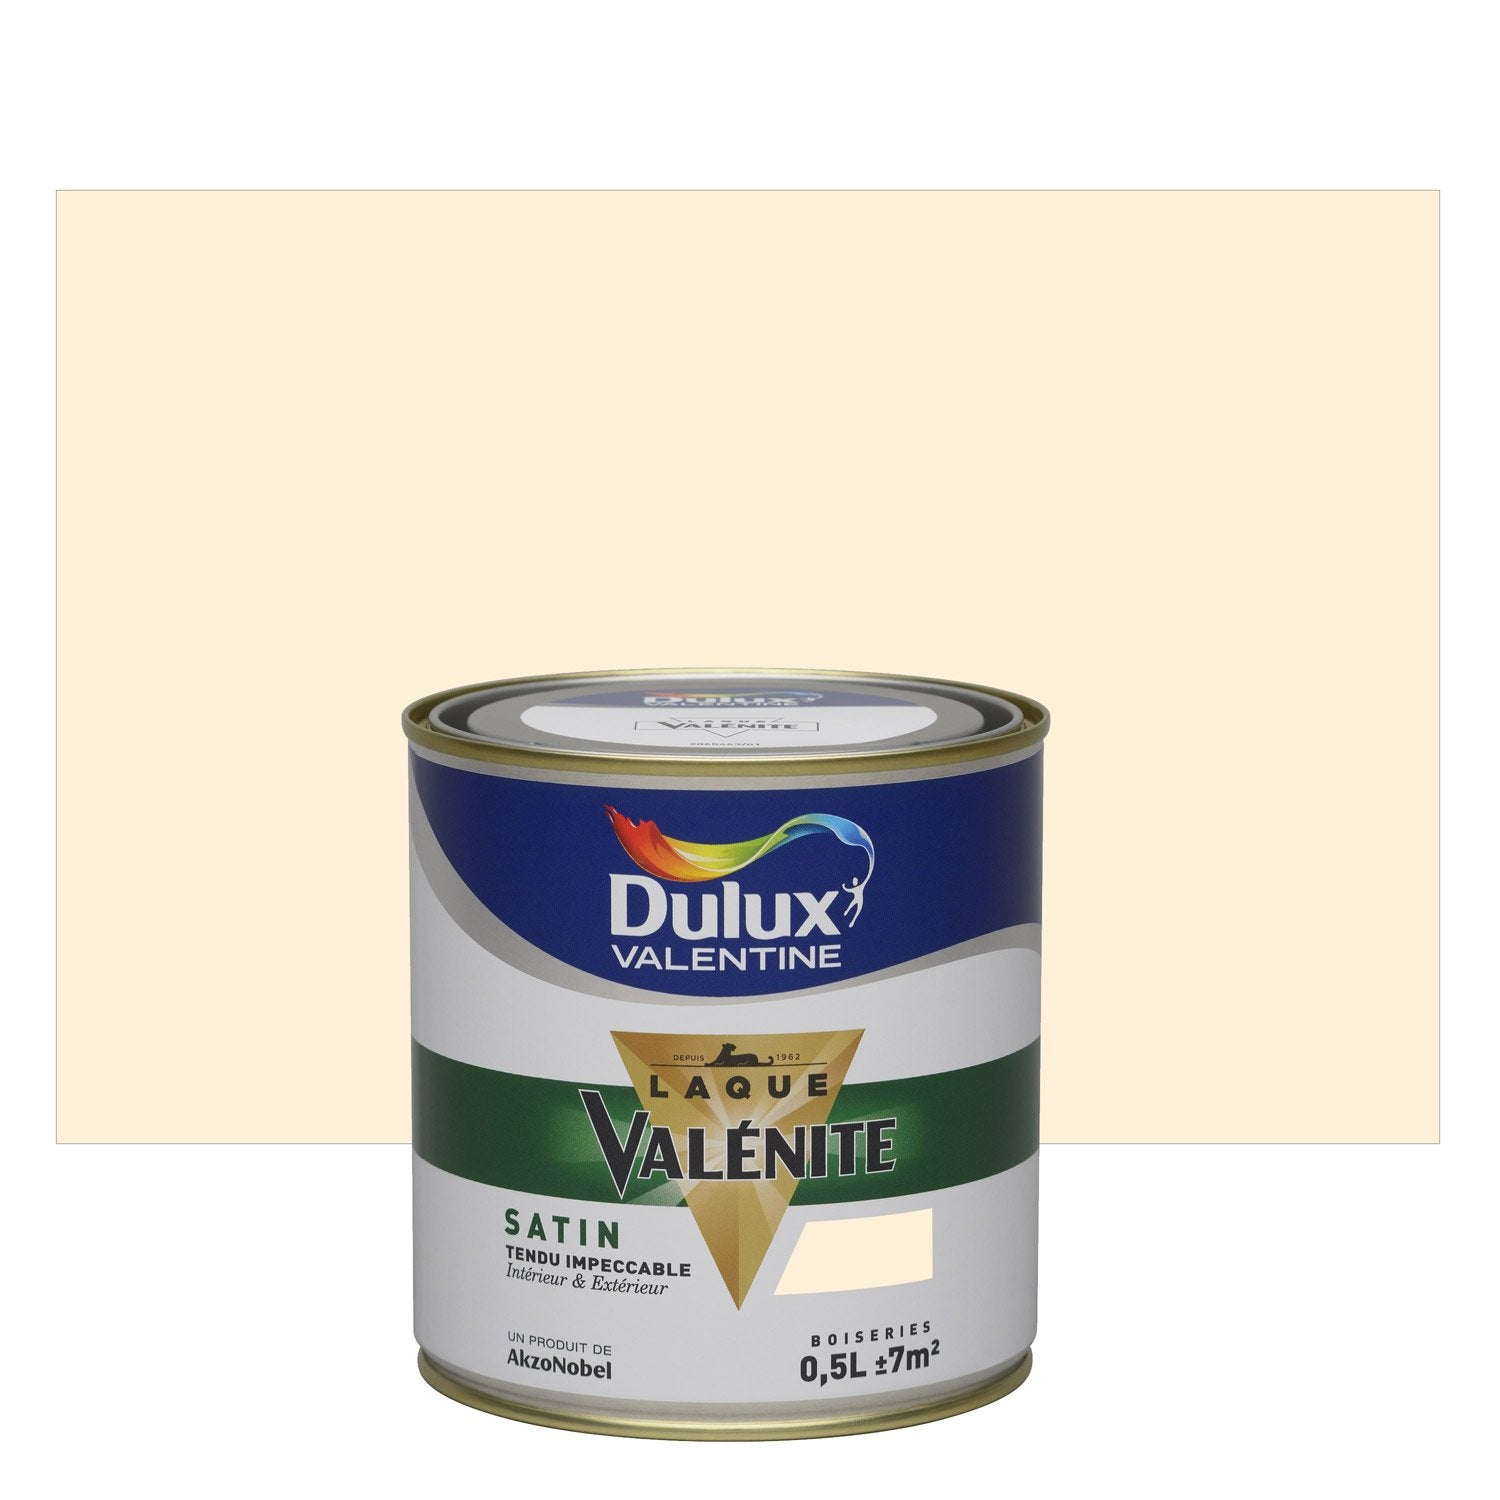 peinture multisupports val nite dulux valentine blanc cass 0 5 l leroy merlin. Black Bedroom Furniture Sets. Home Design Ideas